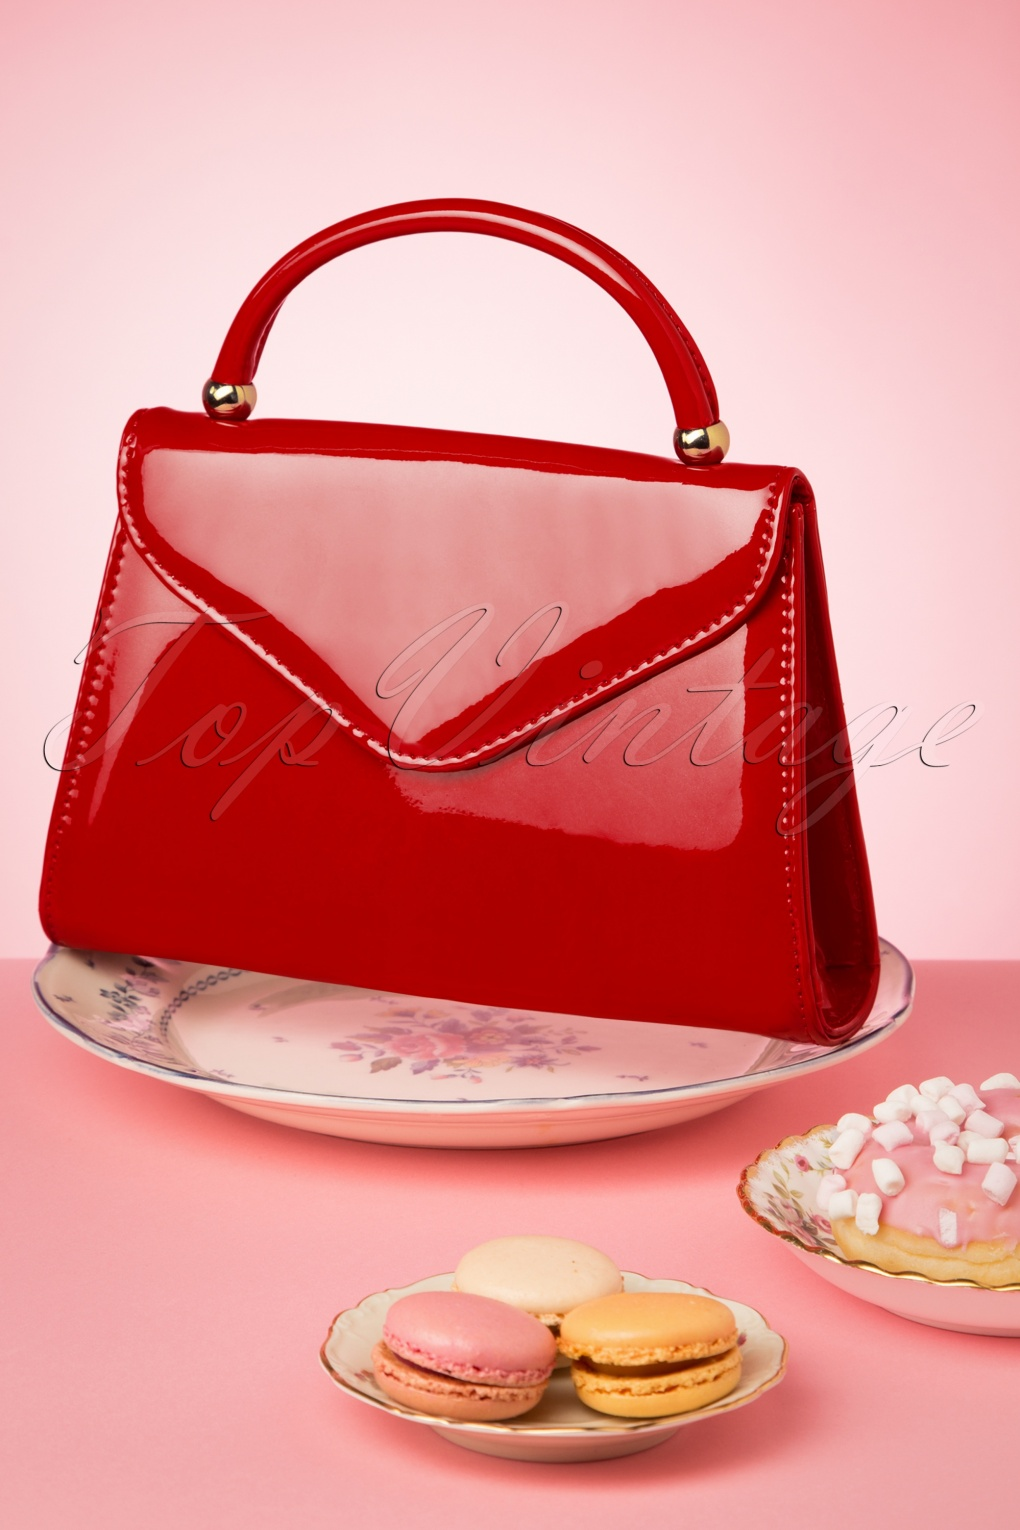 Vintage Handbags, Purses, Bags *New* 60s Lillian Lacquer Flap Bag in Poppy Red £24.01 AT vintagedancer.com